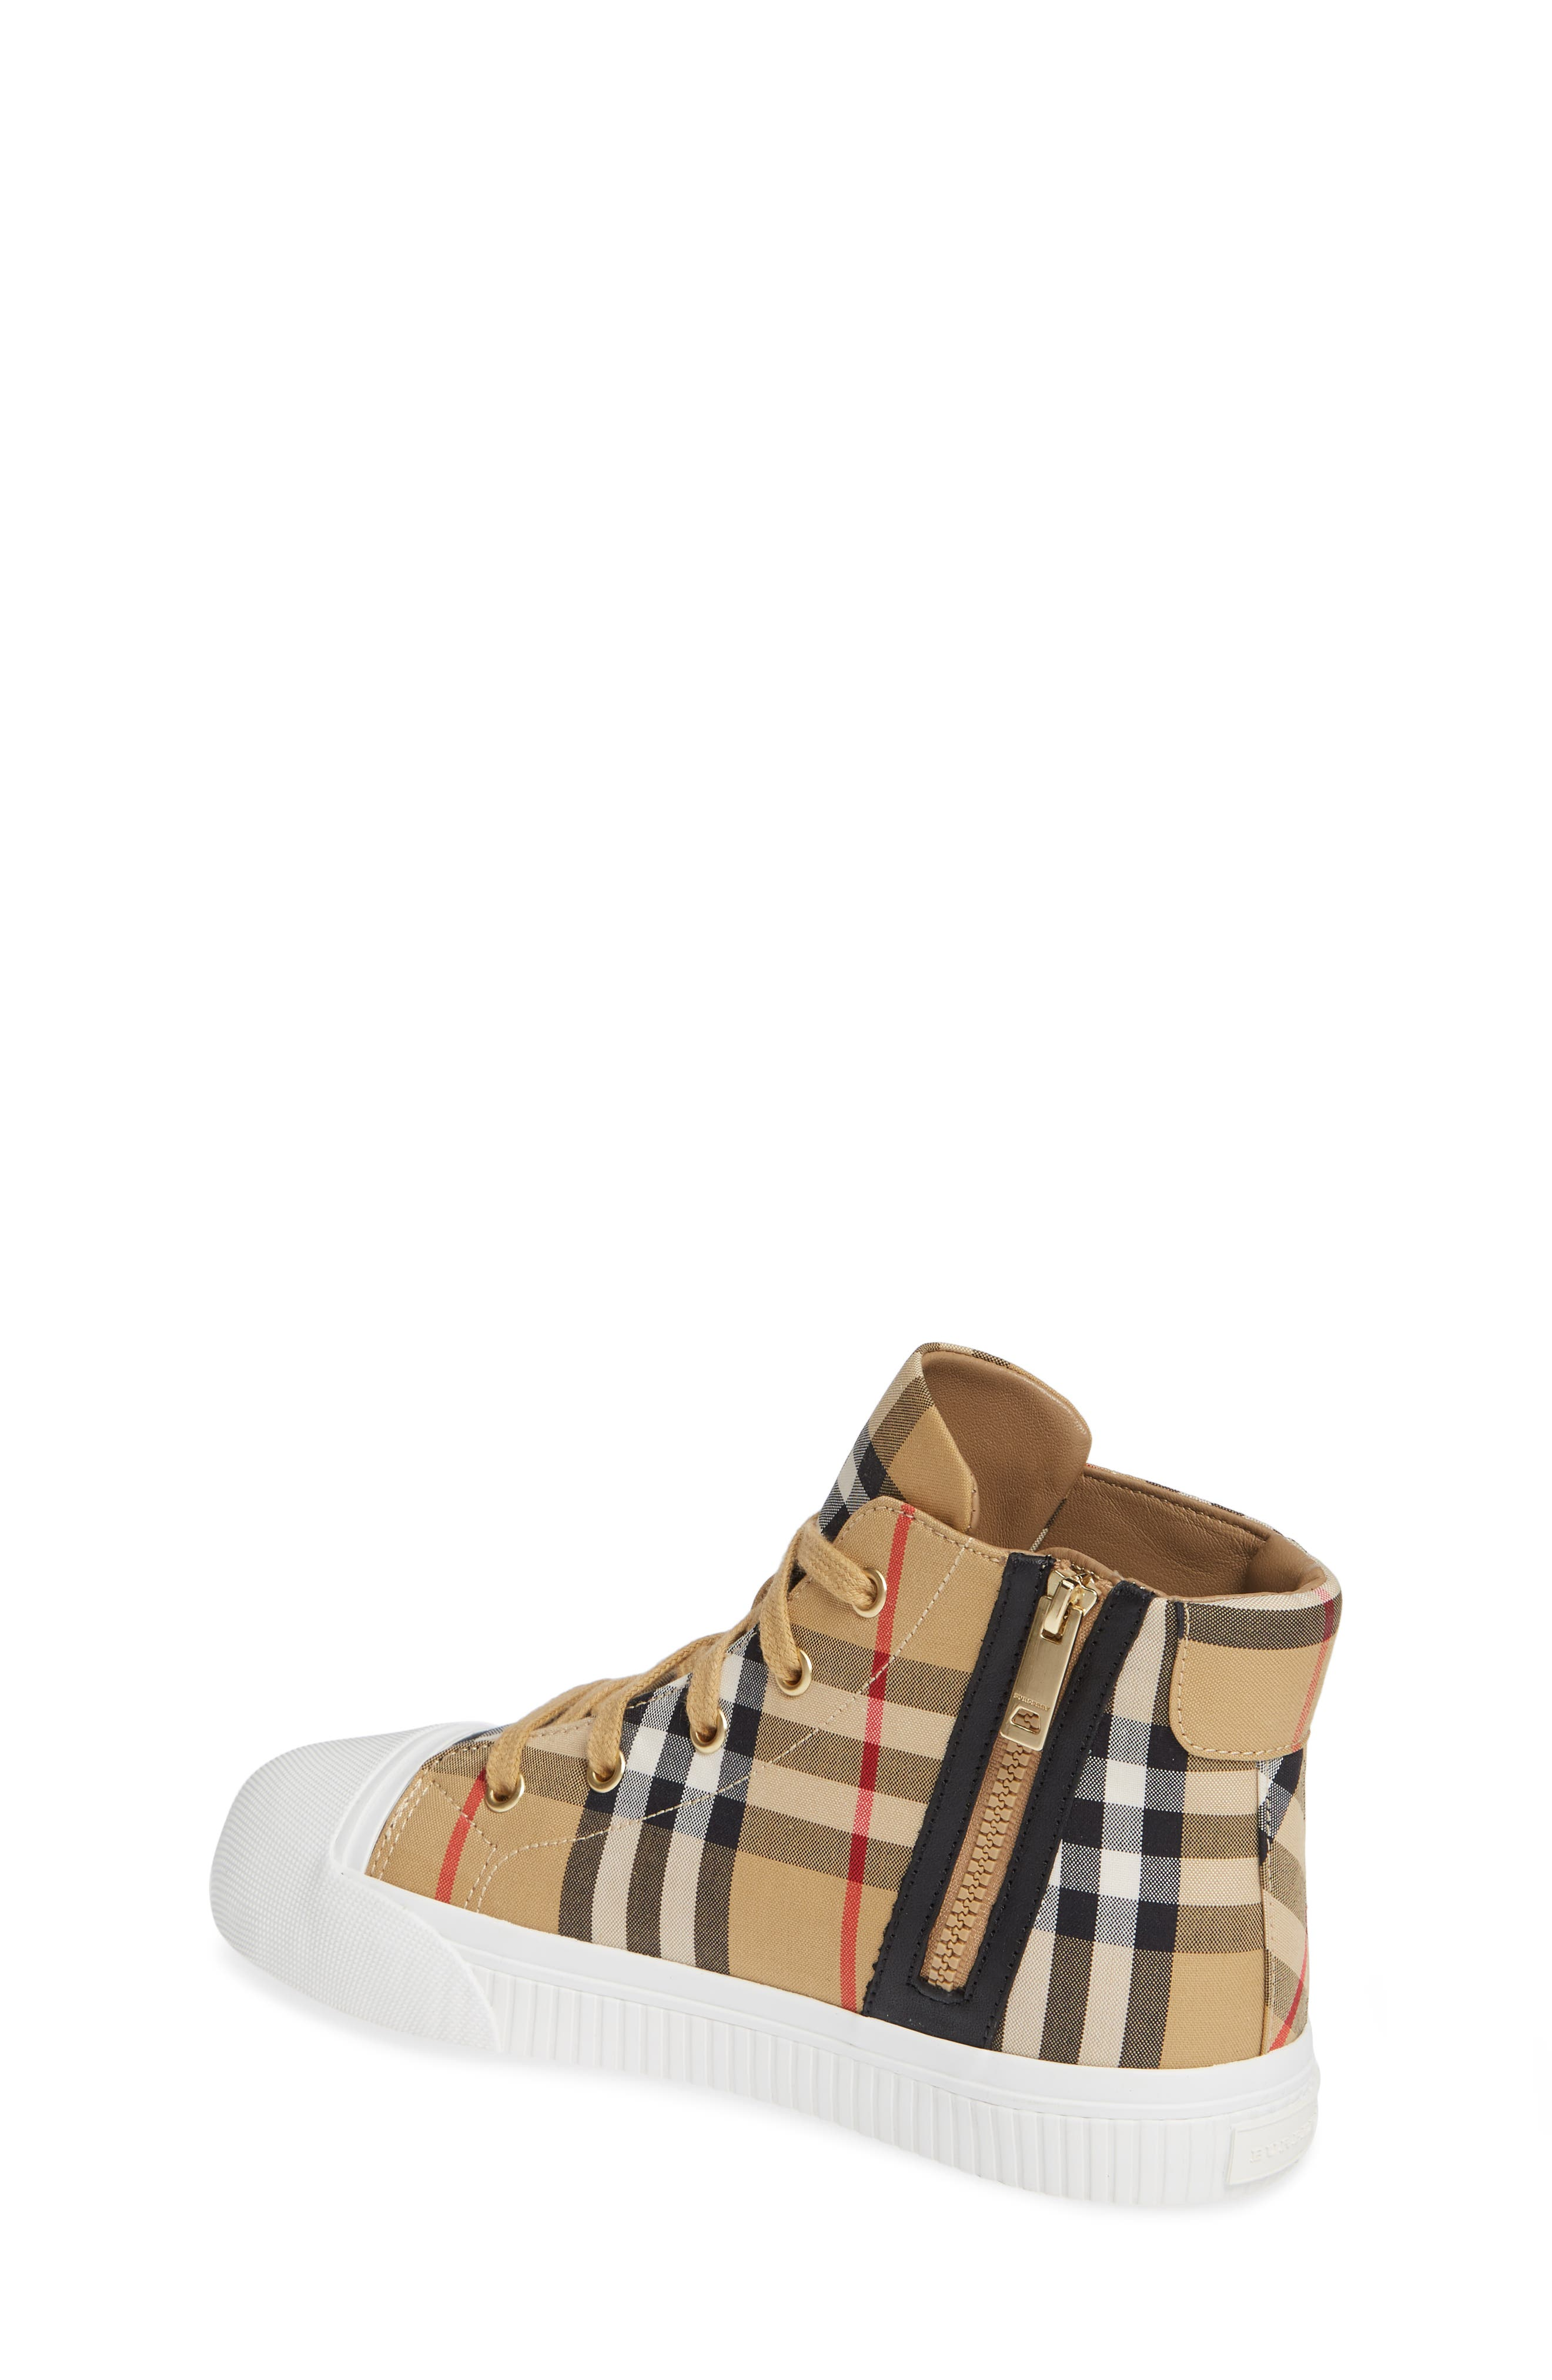 Belford High-Top Sneaker,                             Alternate thumbnail 2, color,                             ANTIQUE YELLOW/ OPTIC WHITE